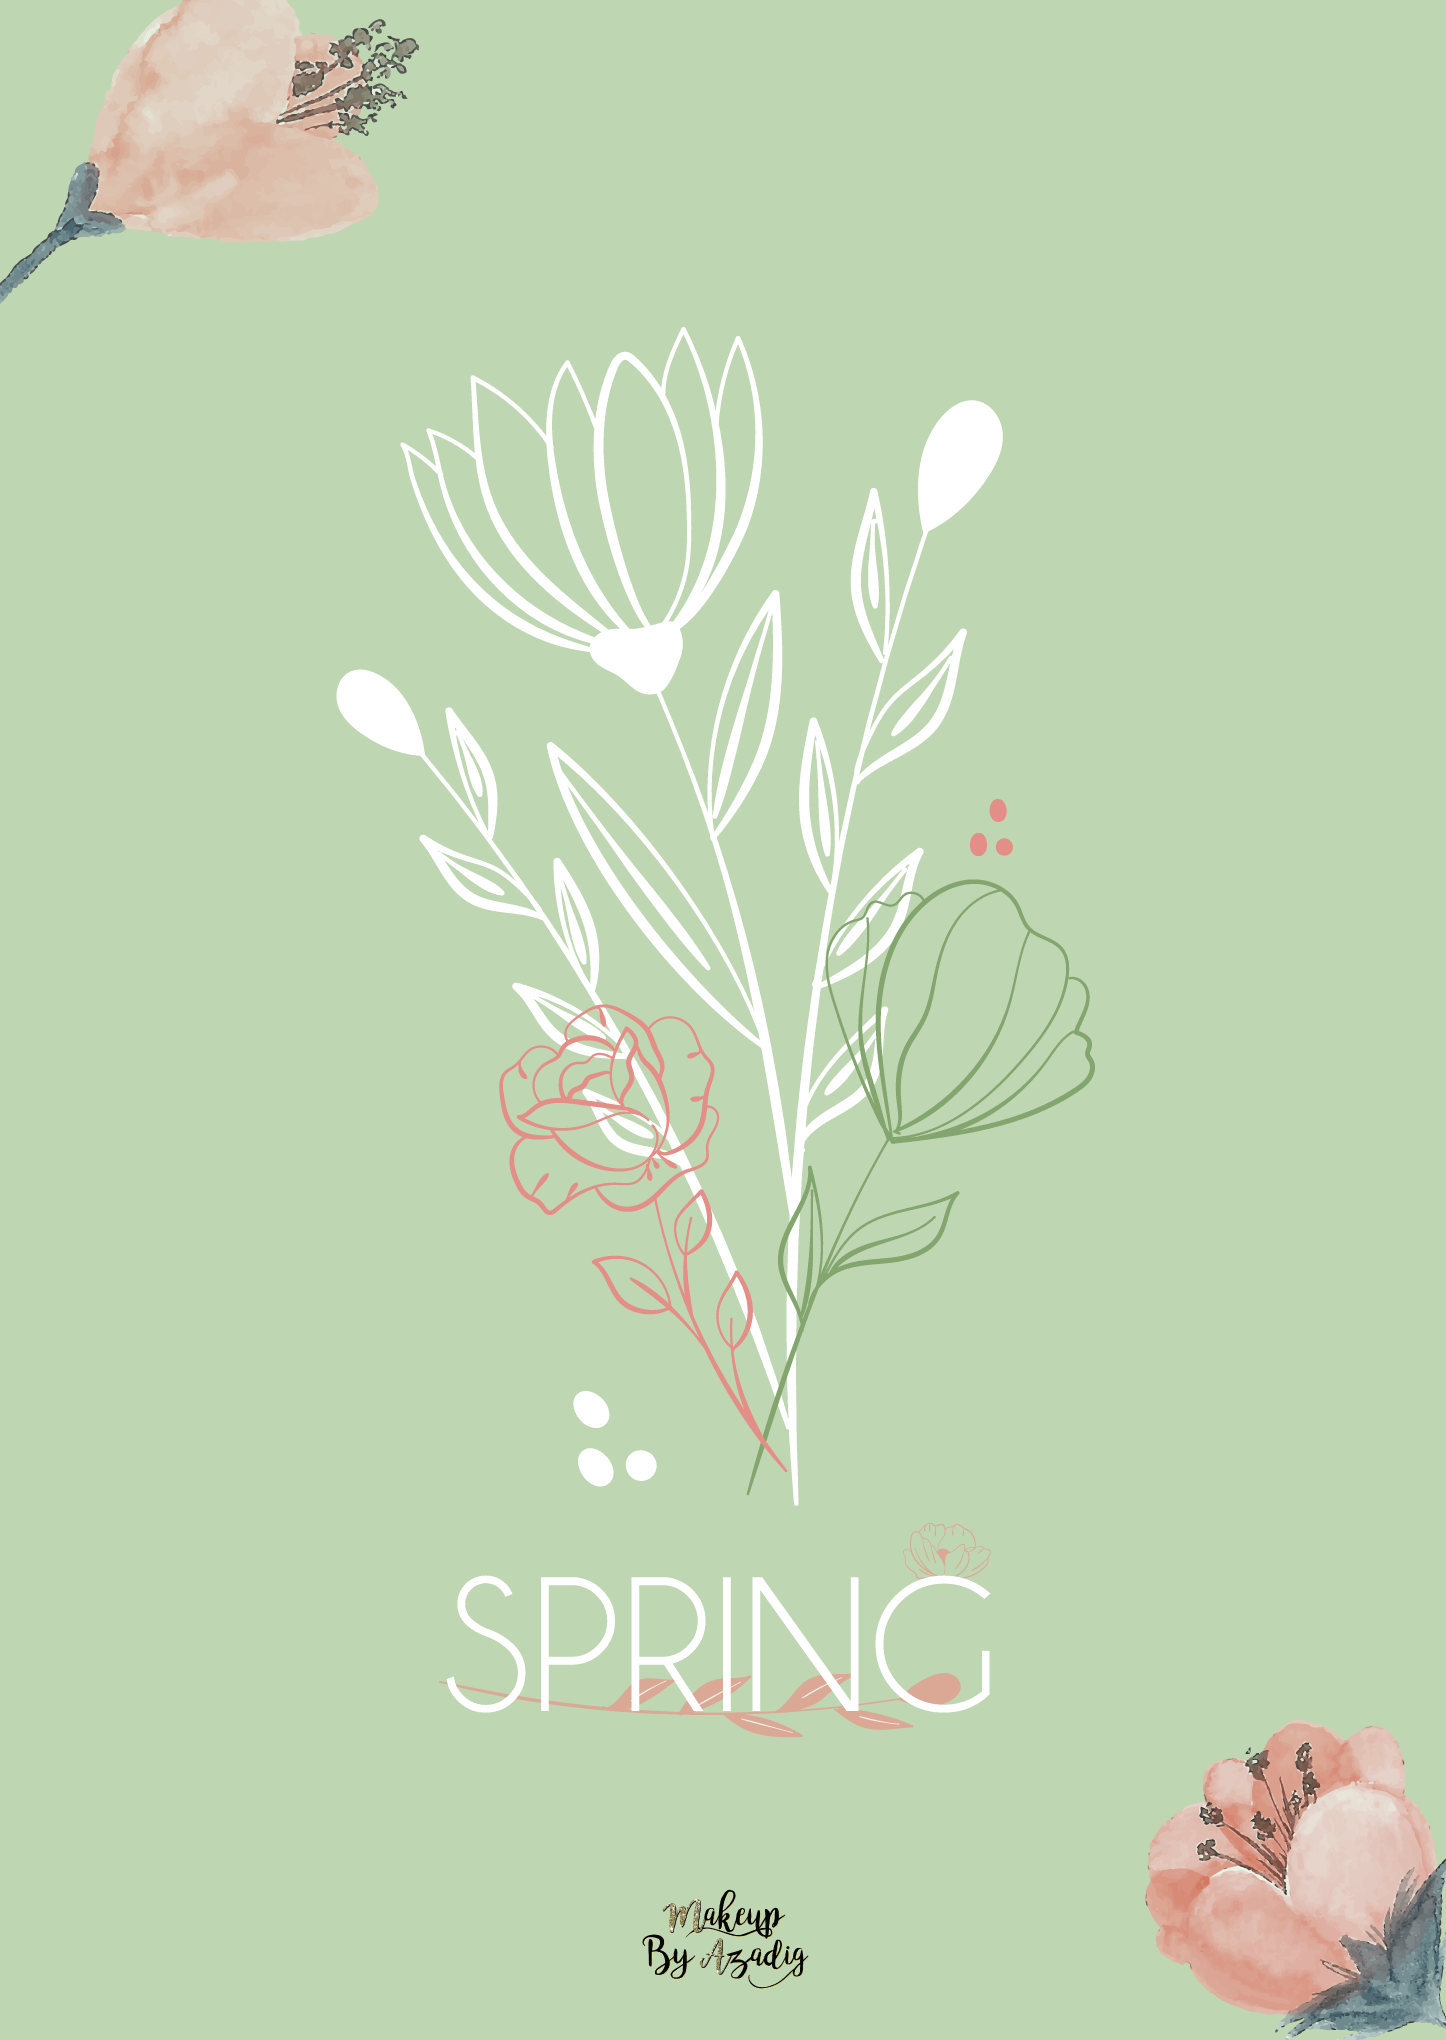 fond-decran-wallpaper-printemps-fleurs-flower-spring-girly-ipad-tablette-apple-makeupbyazadig-tendance